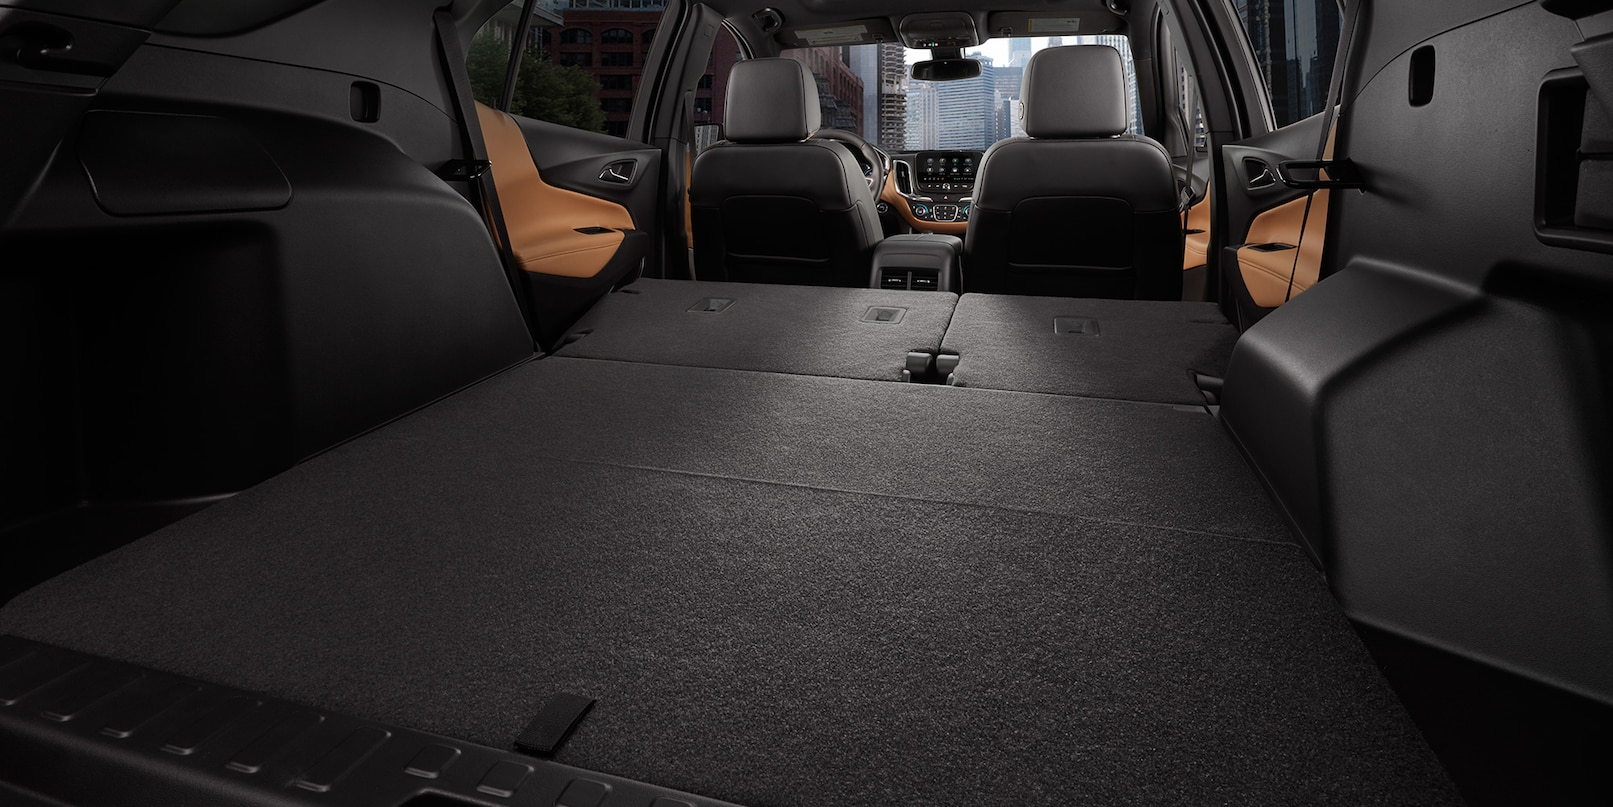 Commodious Cabin of the 2020 Equinox